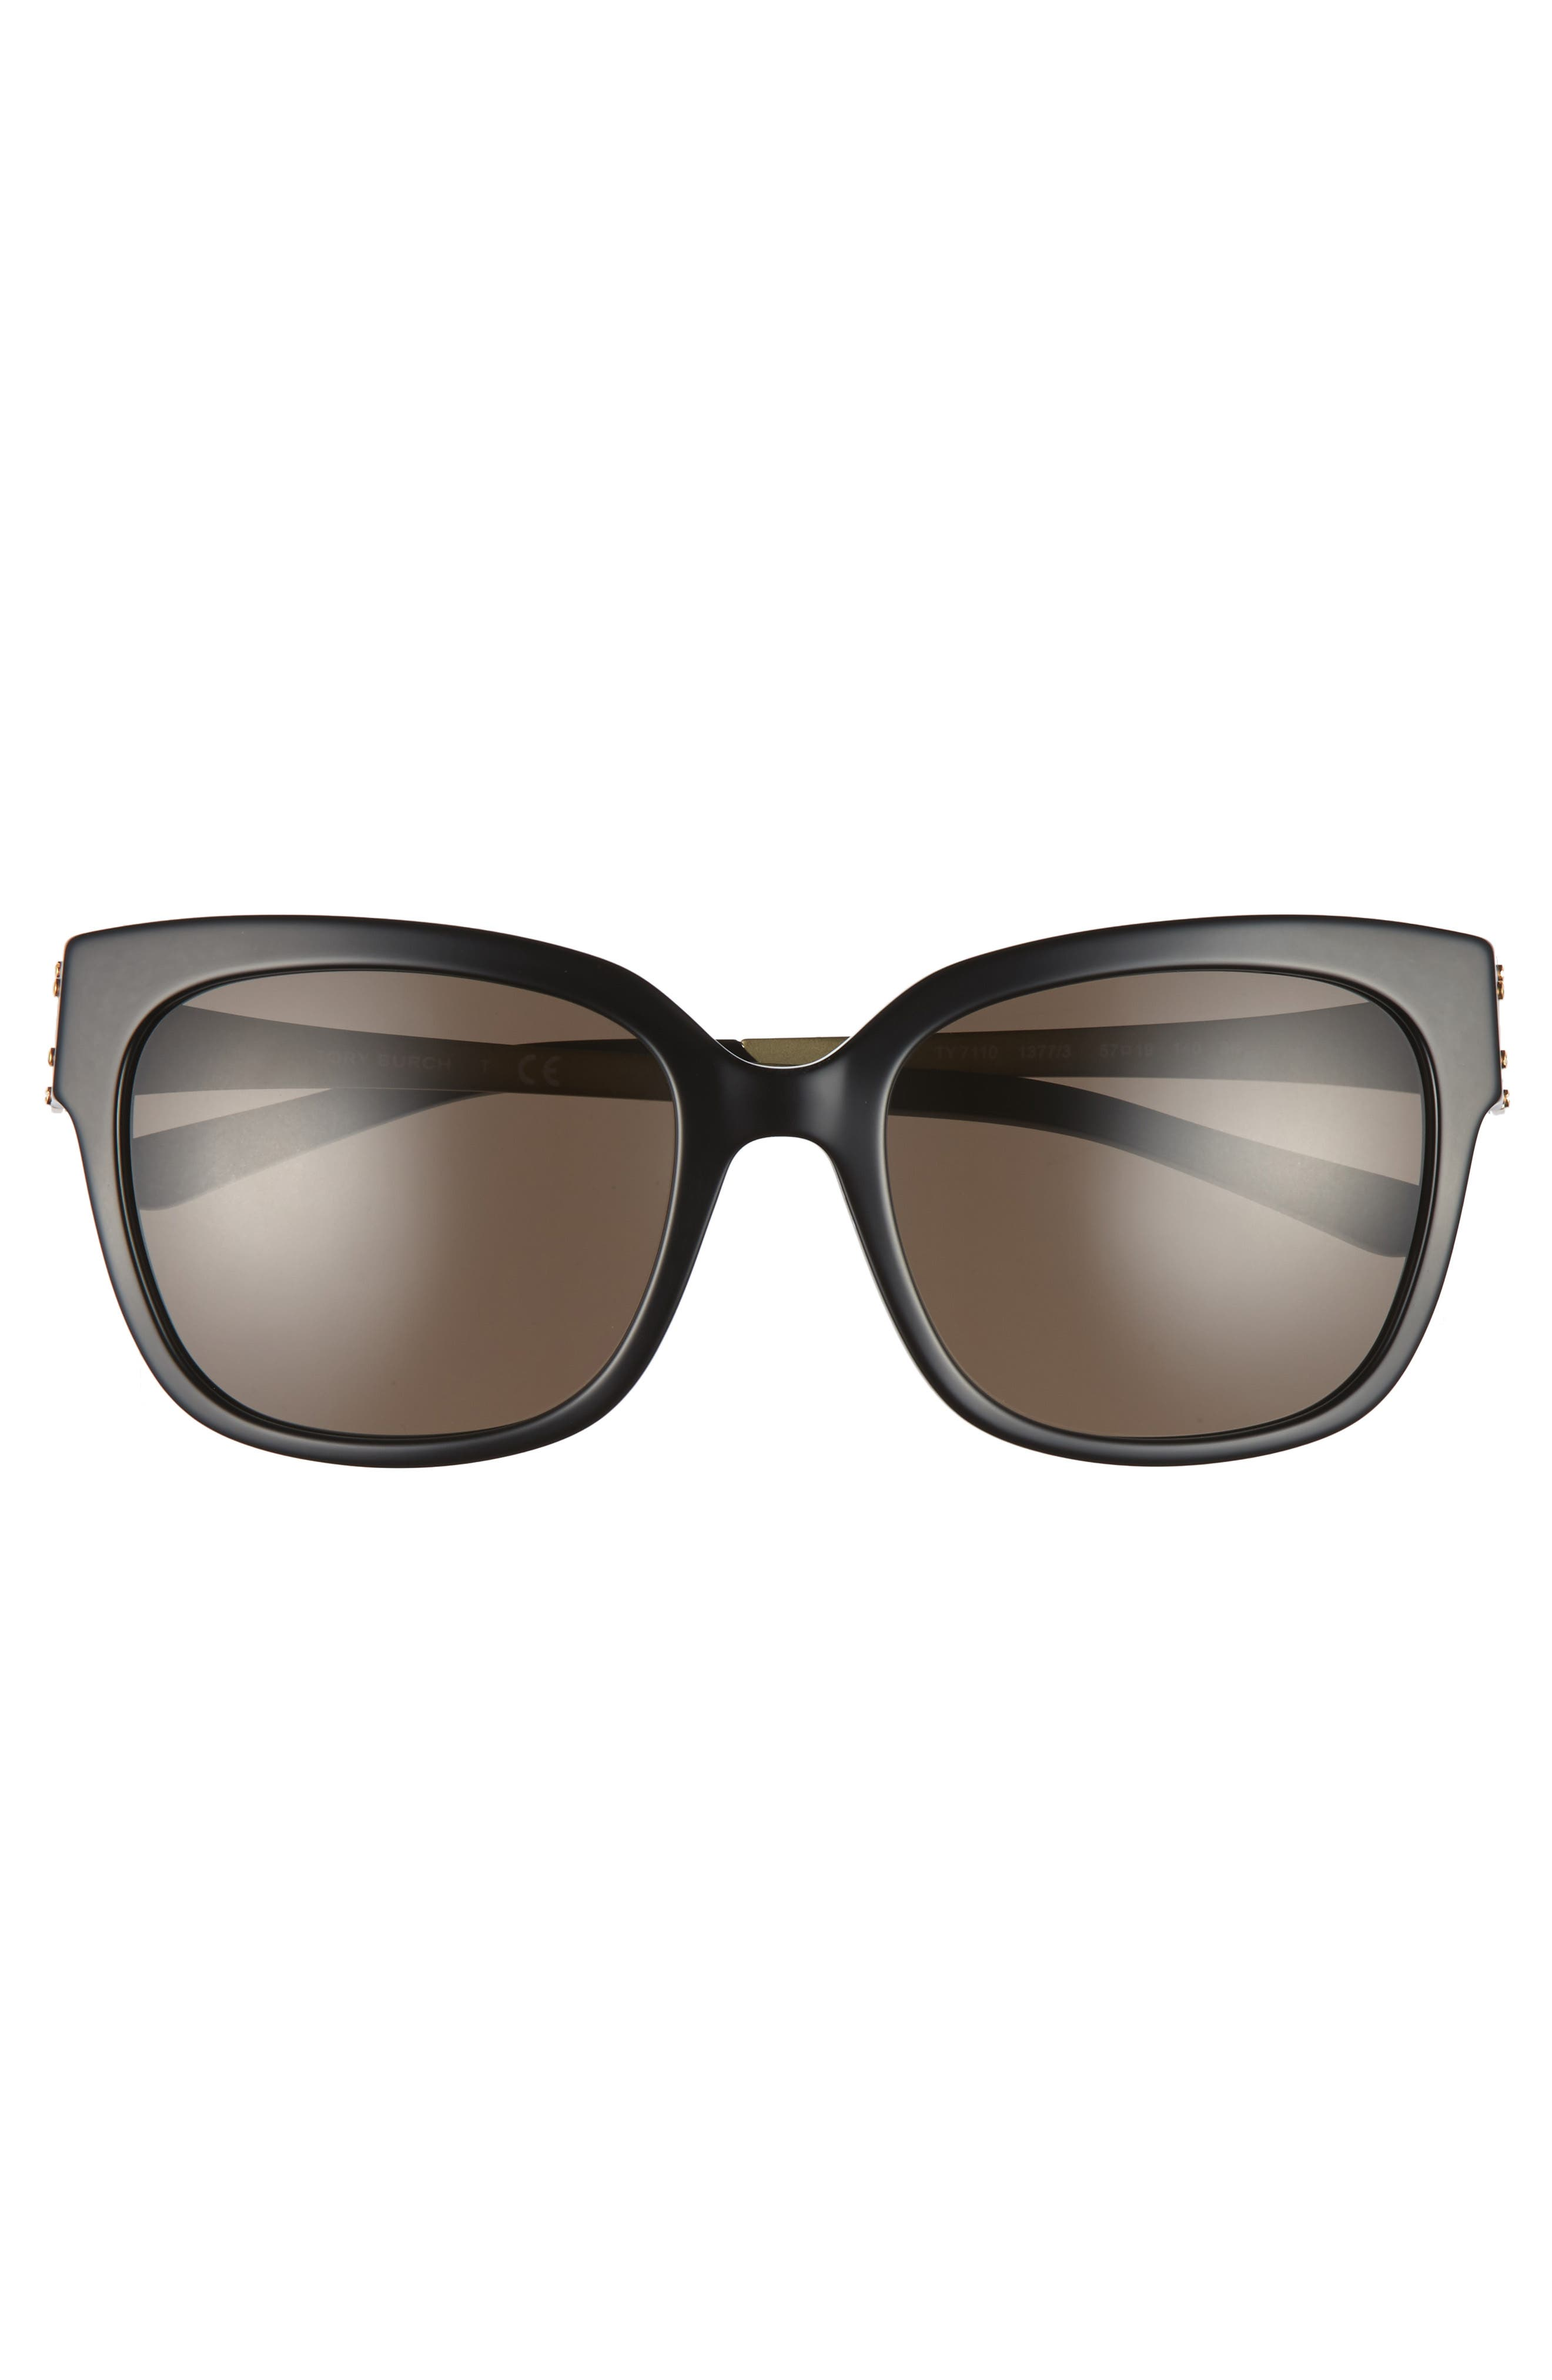 57mm Sunglasses,                             Alternate thumbnail 3, color,                             Black